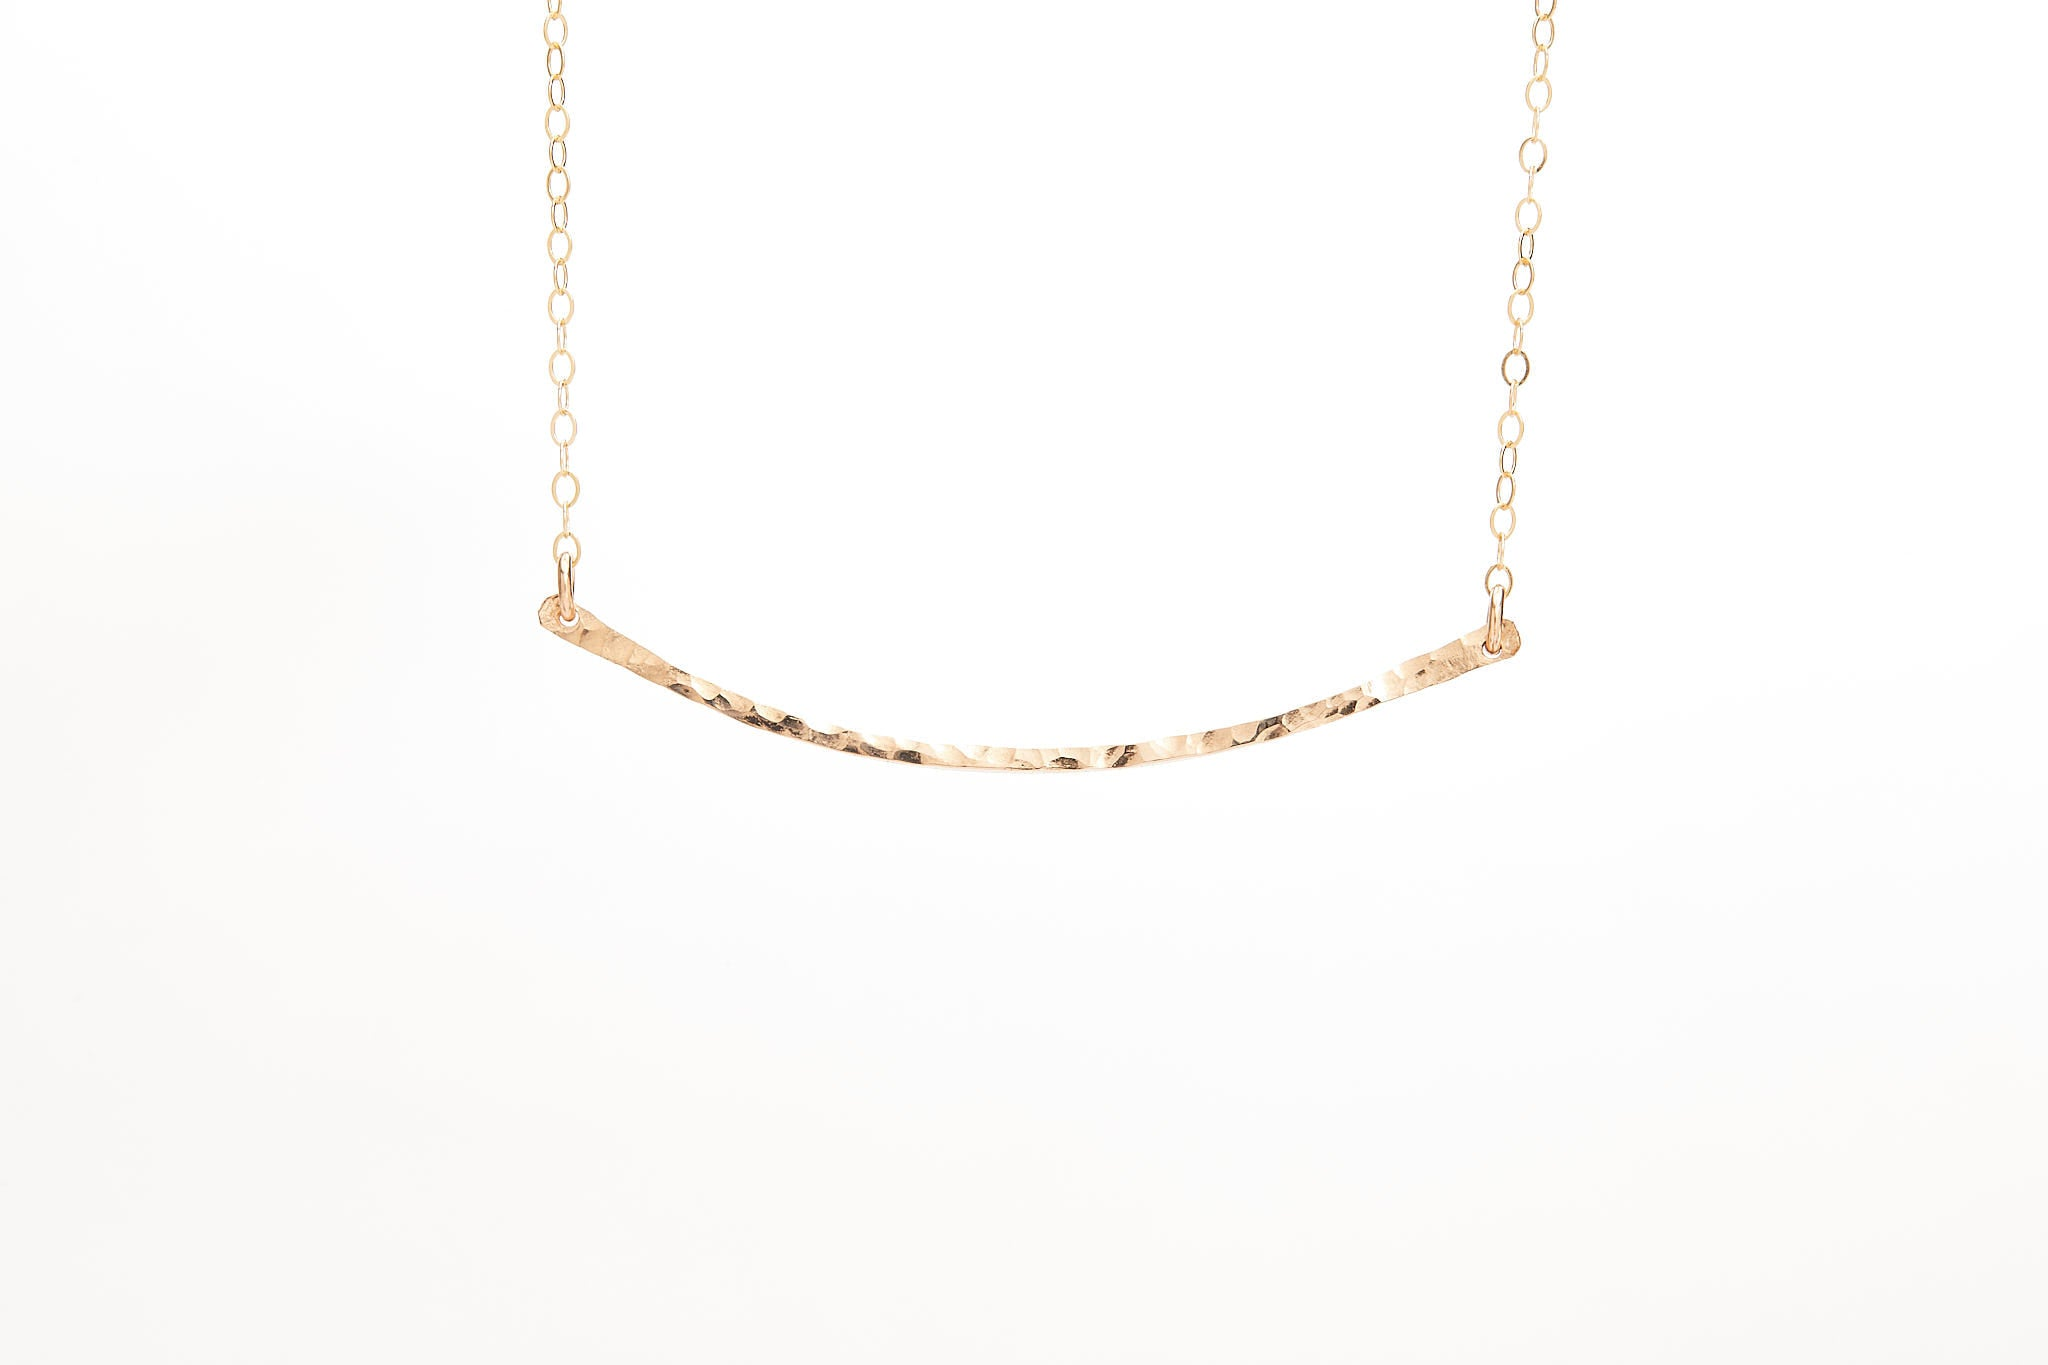 The Hammered Bar Necklace